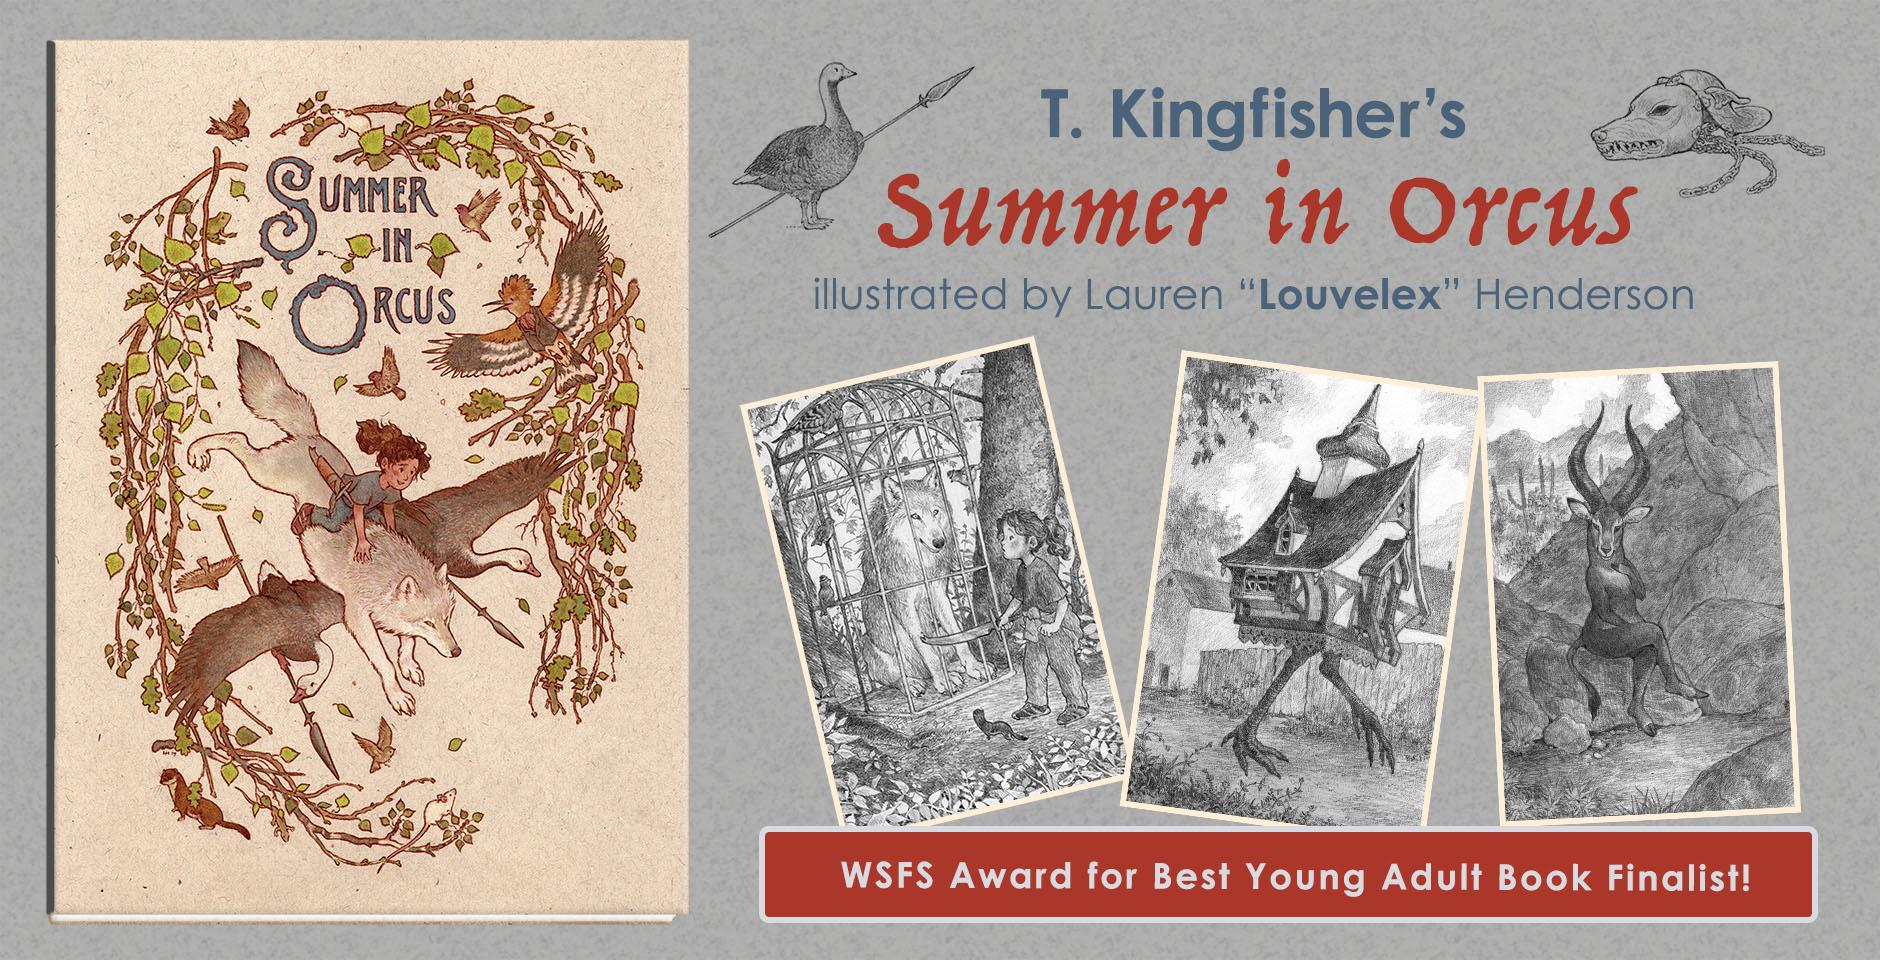 Summer in Orcus by T. Kingfisher, illustrated by Lauren Henderson